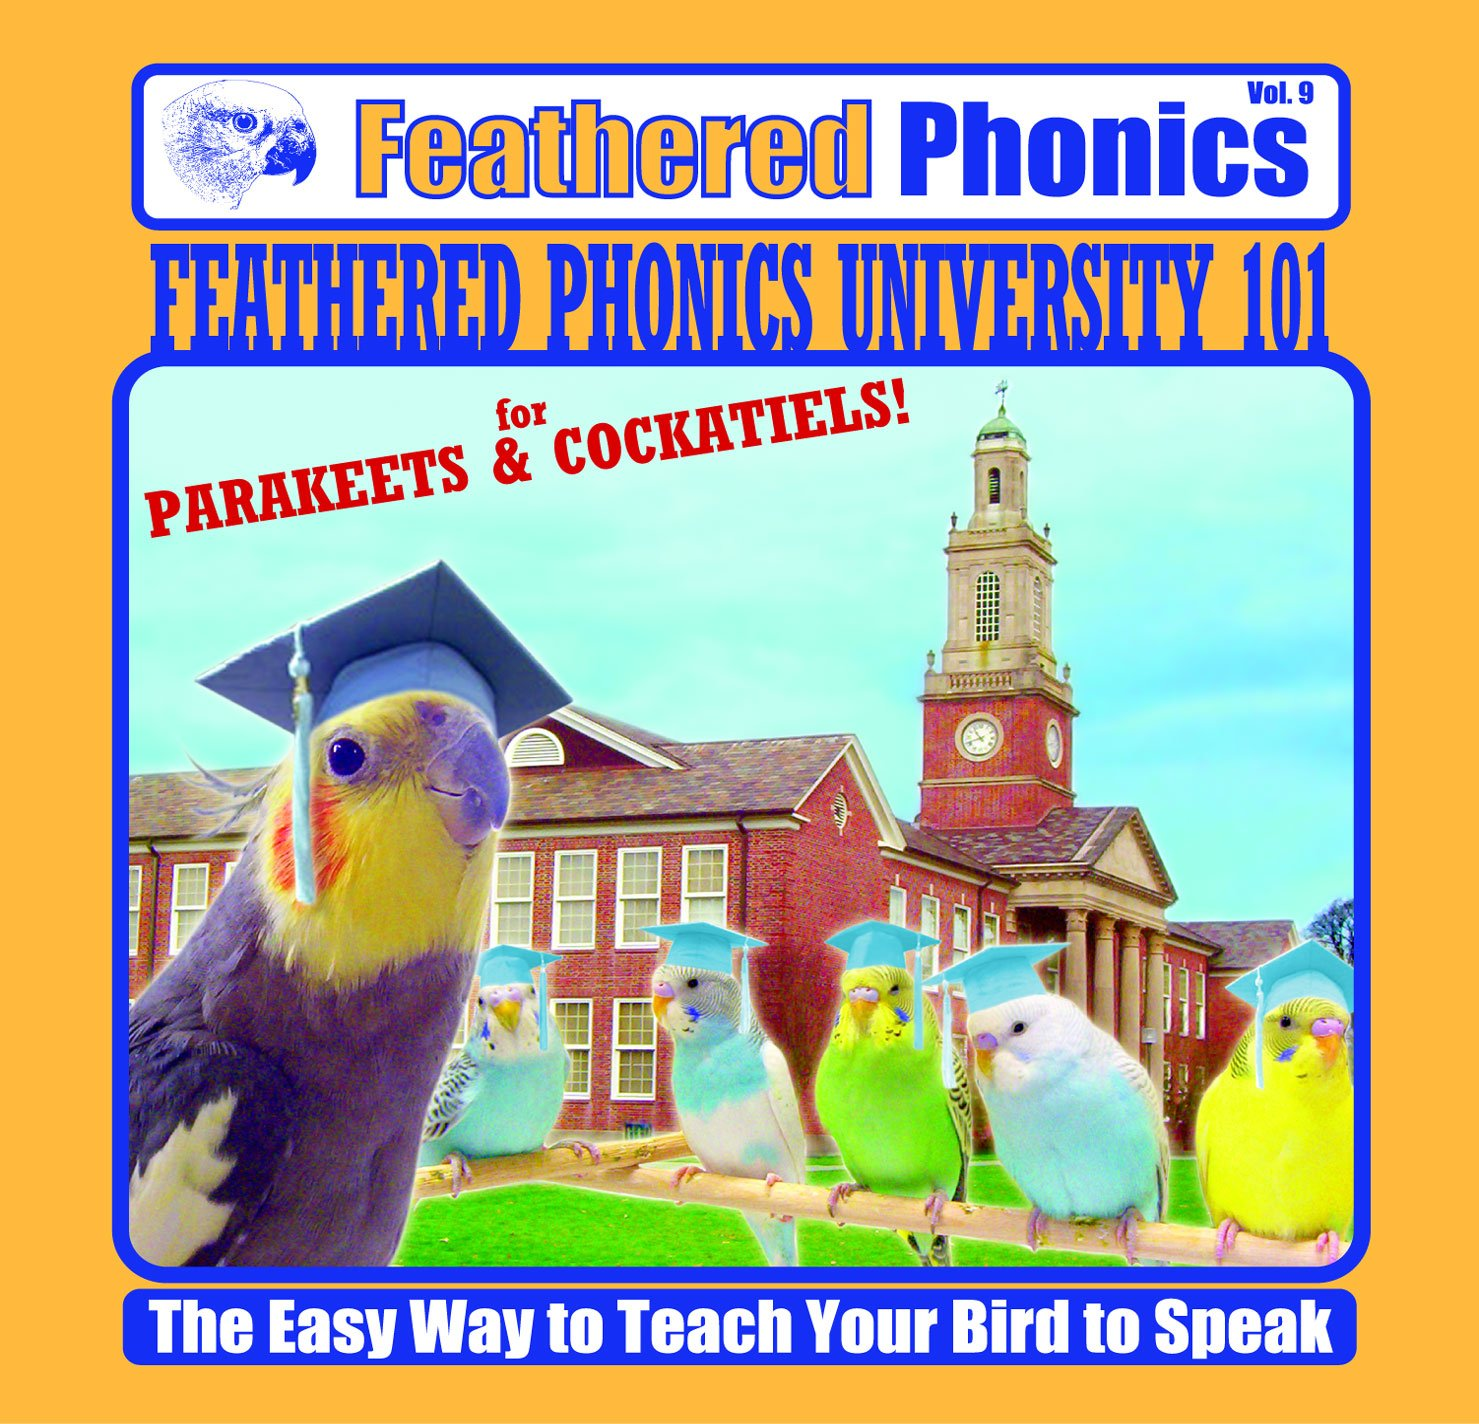 senza esitazione! acquista ora! Feathered Feathered Feathered Phonics The Easy Way To Teach Your Bird To Speak Volume 9  Feathered Phonics University 101 by Pet Media  memorizzare